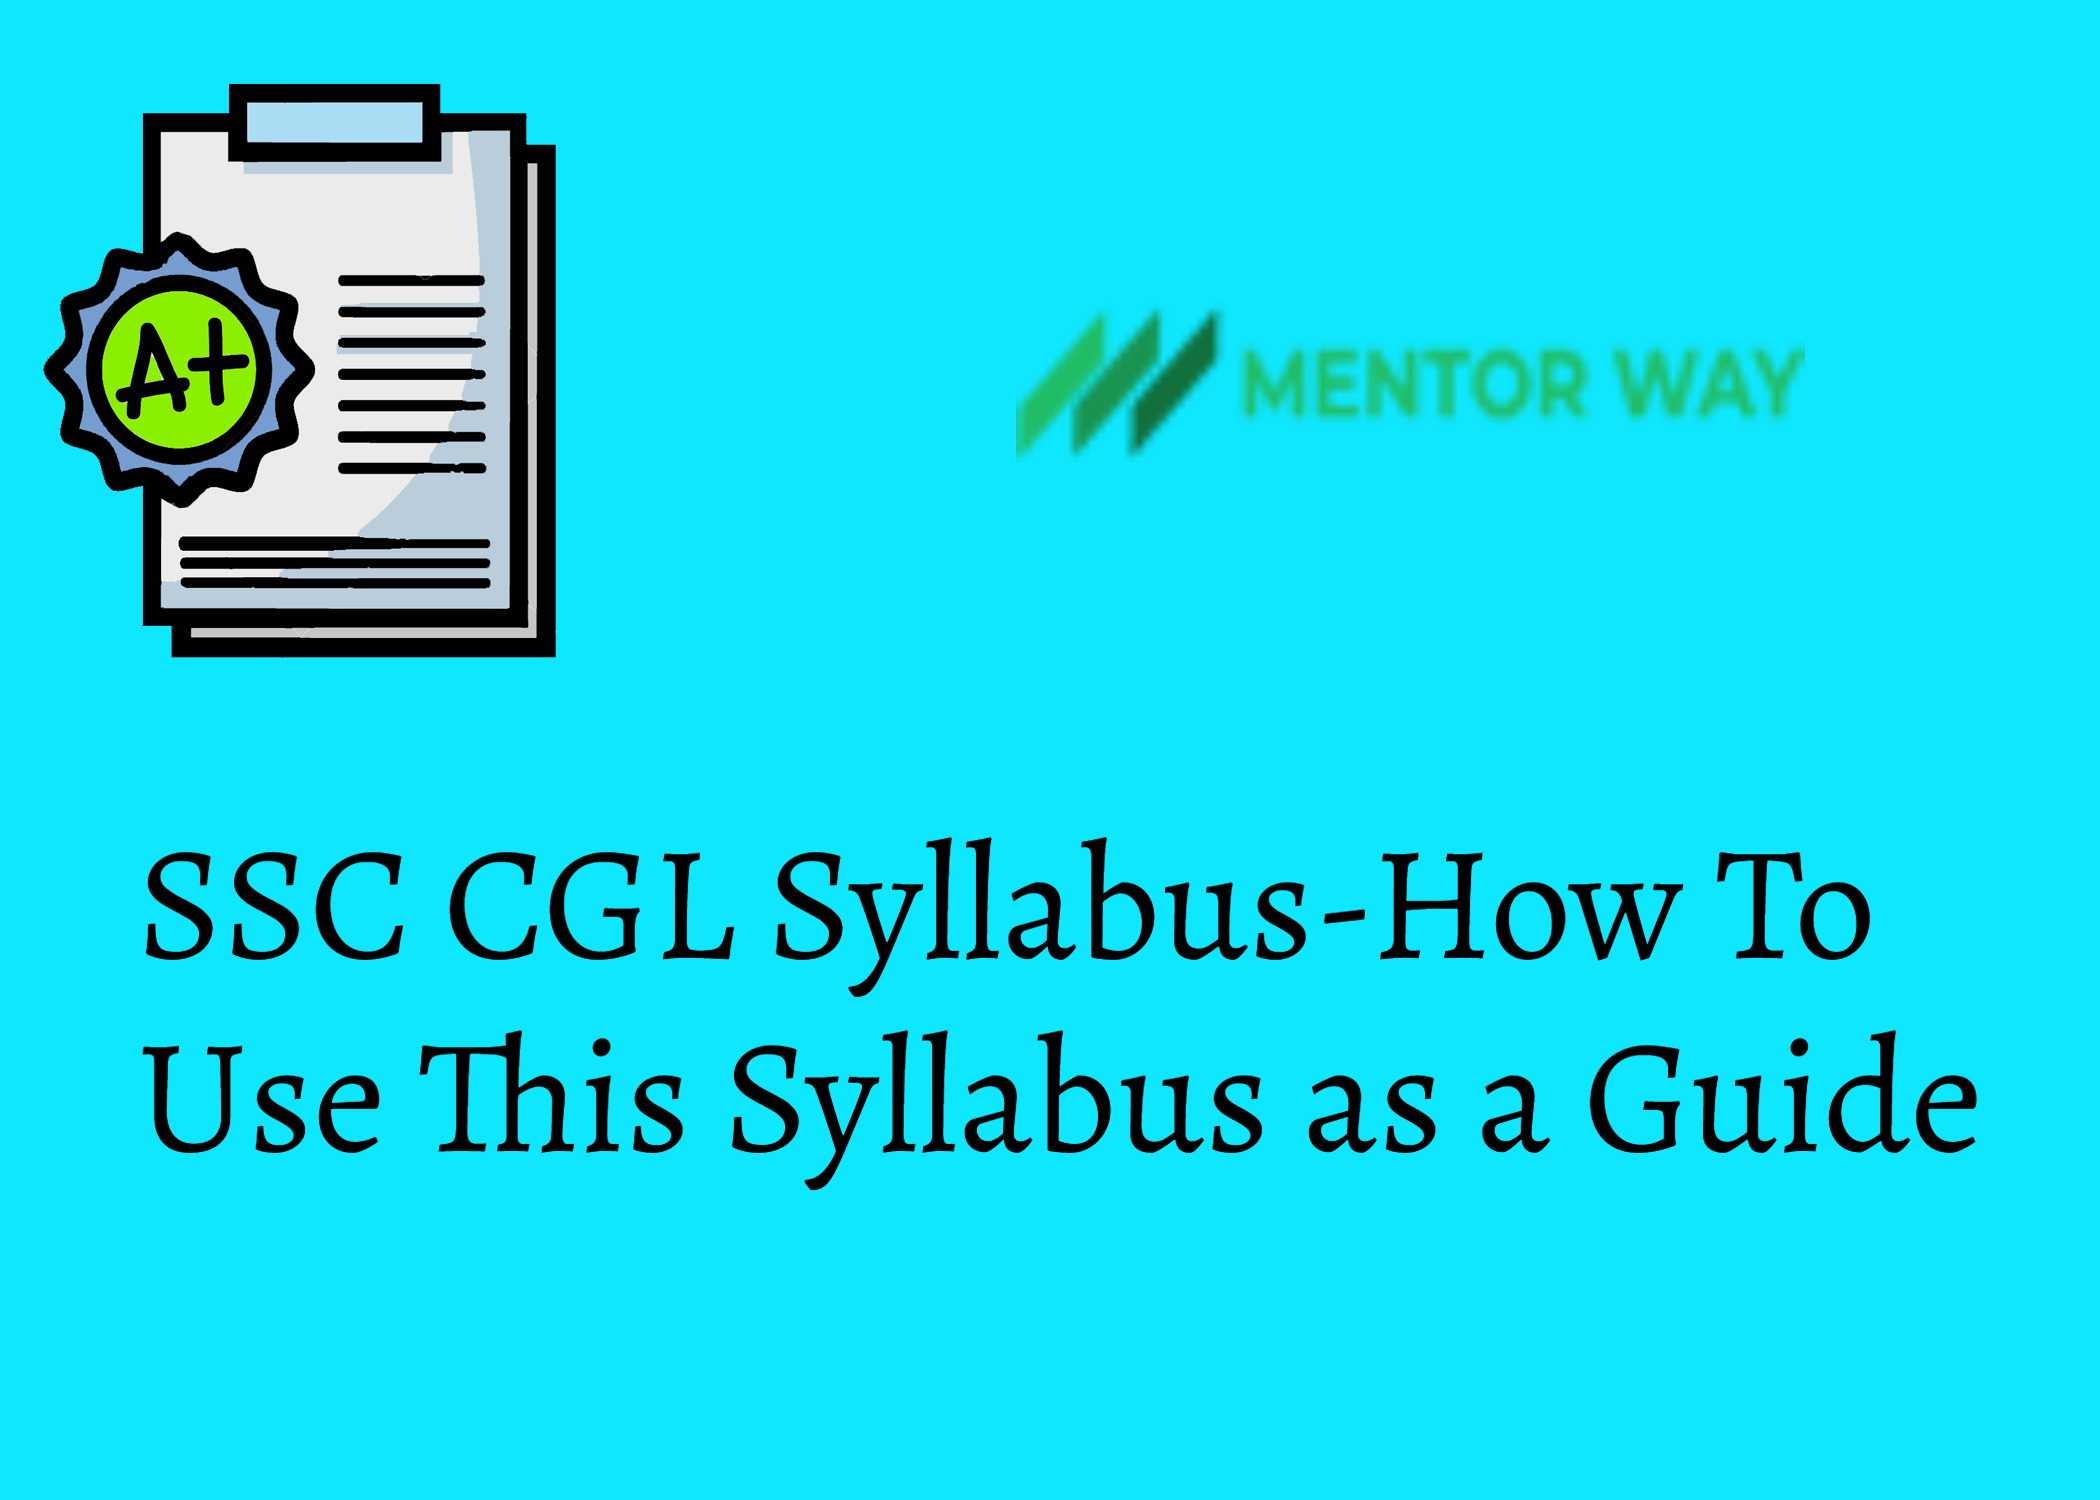 SSC CGL Syllabus-How To Use This Syllabus as a Guide